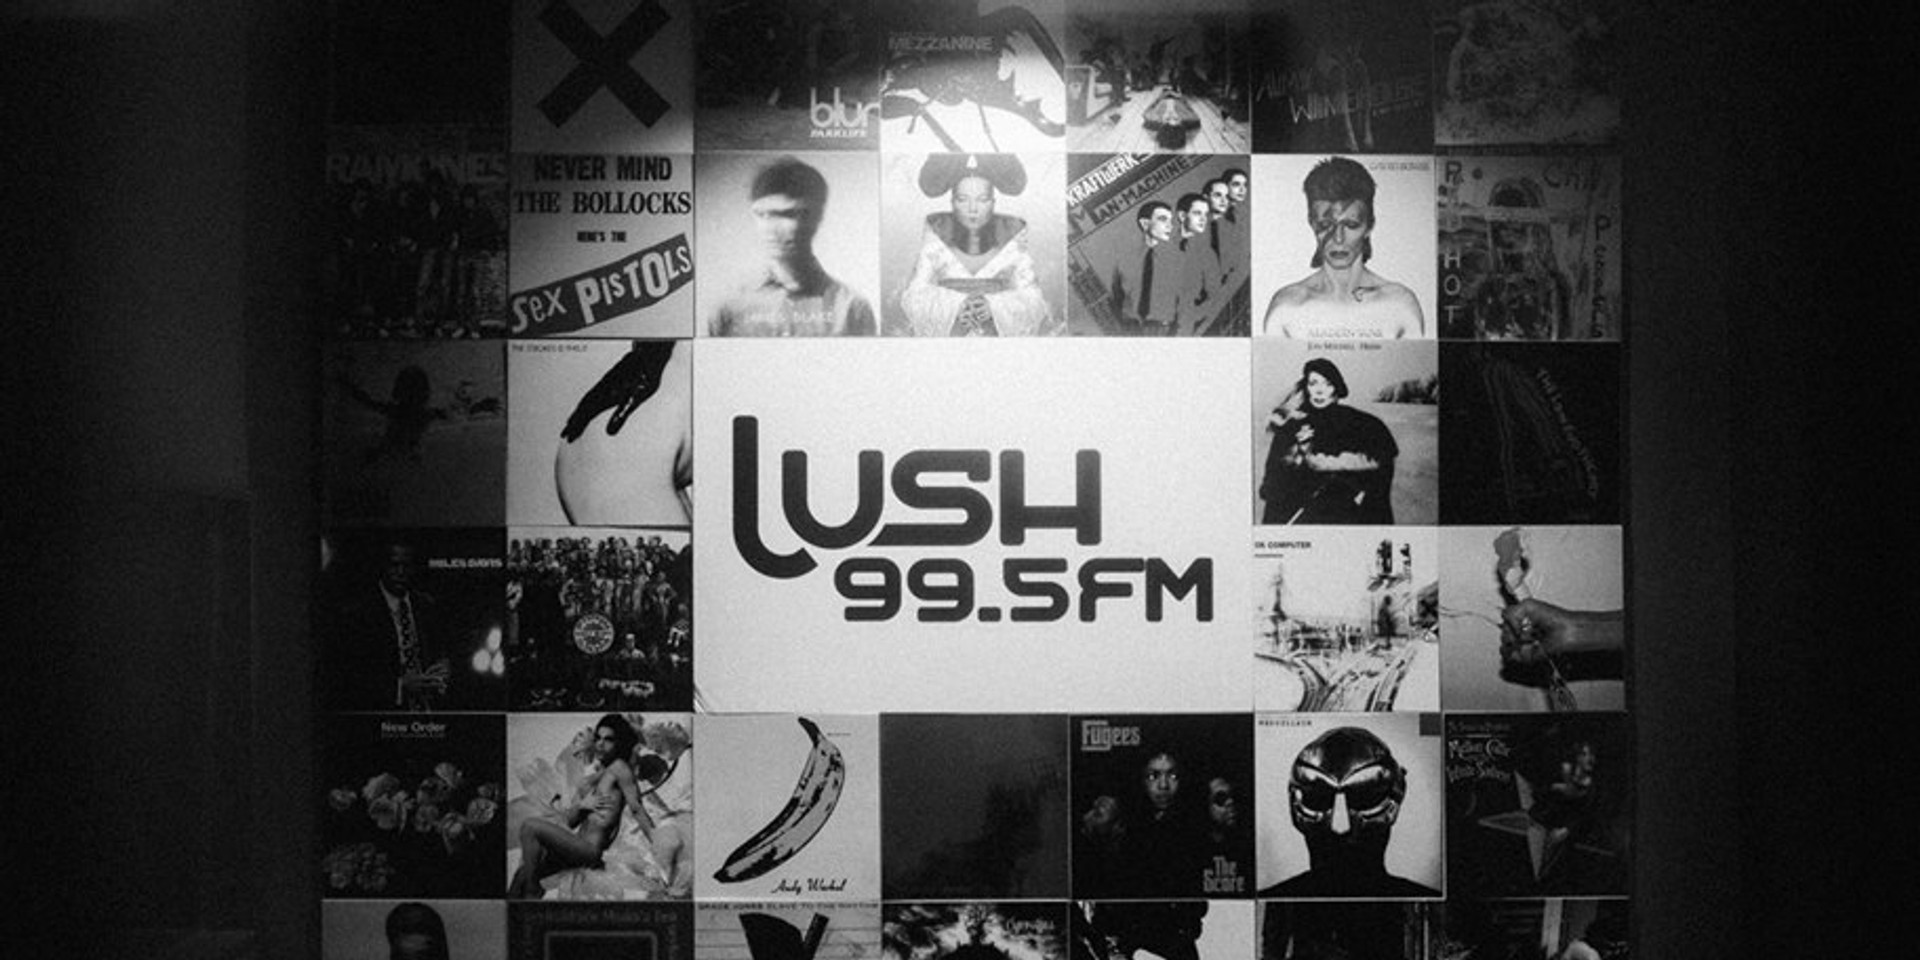 Lush 99.5FM's holding a free party to properly say goodbye